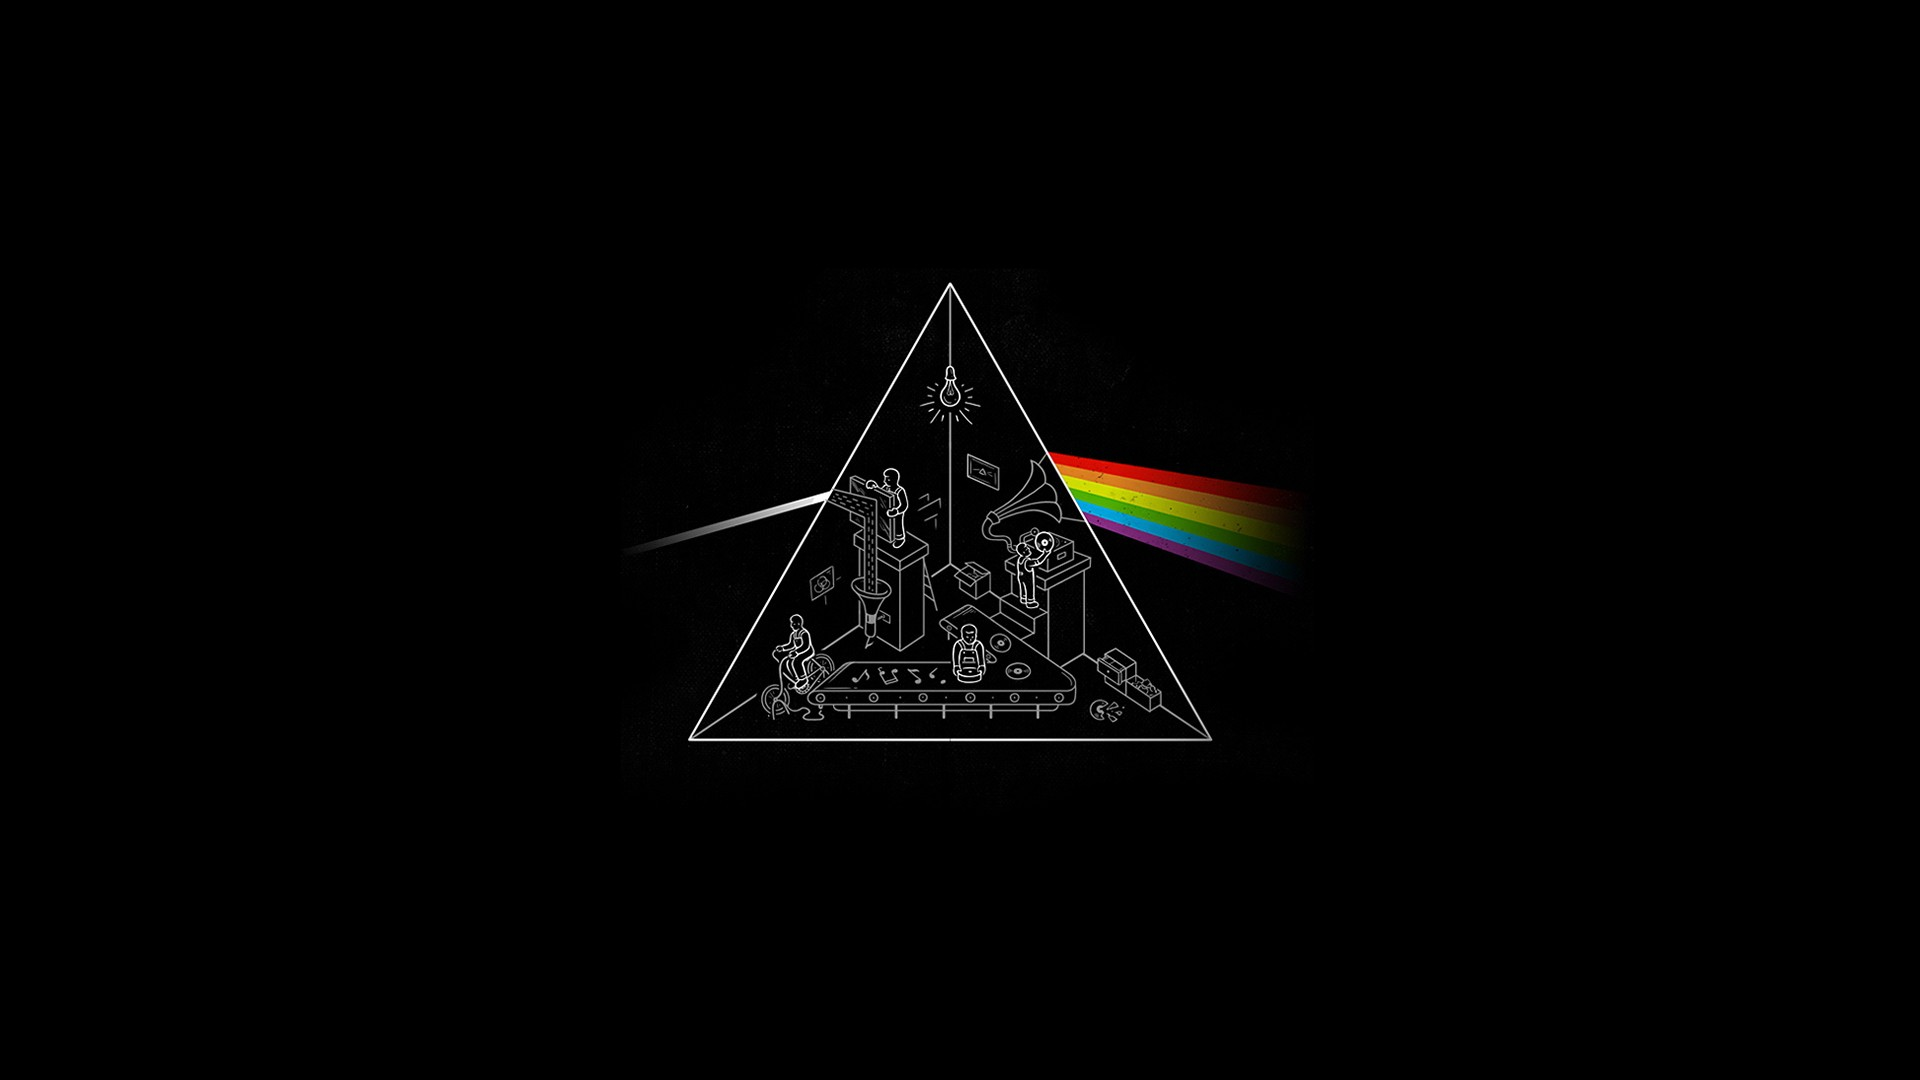 Pink Floyd Full Hd Wallpaper And Background  1920X1080 -1878